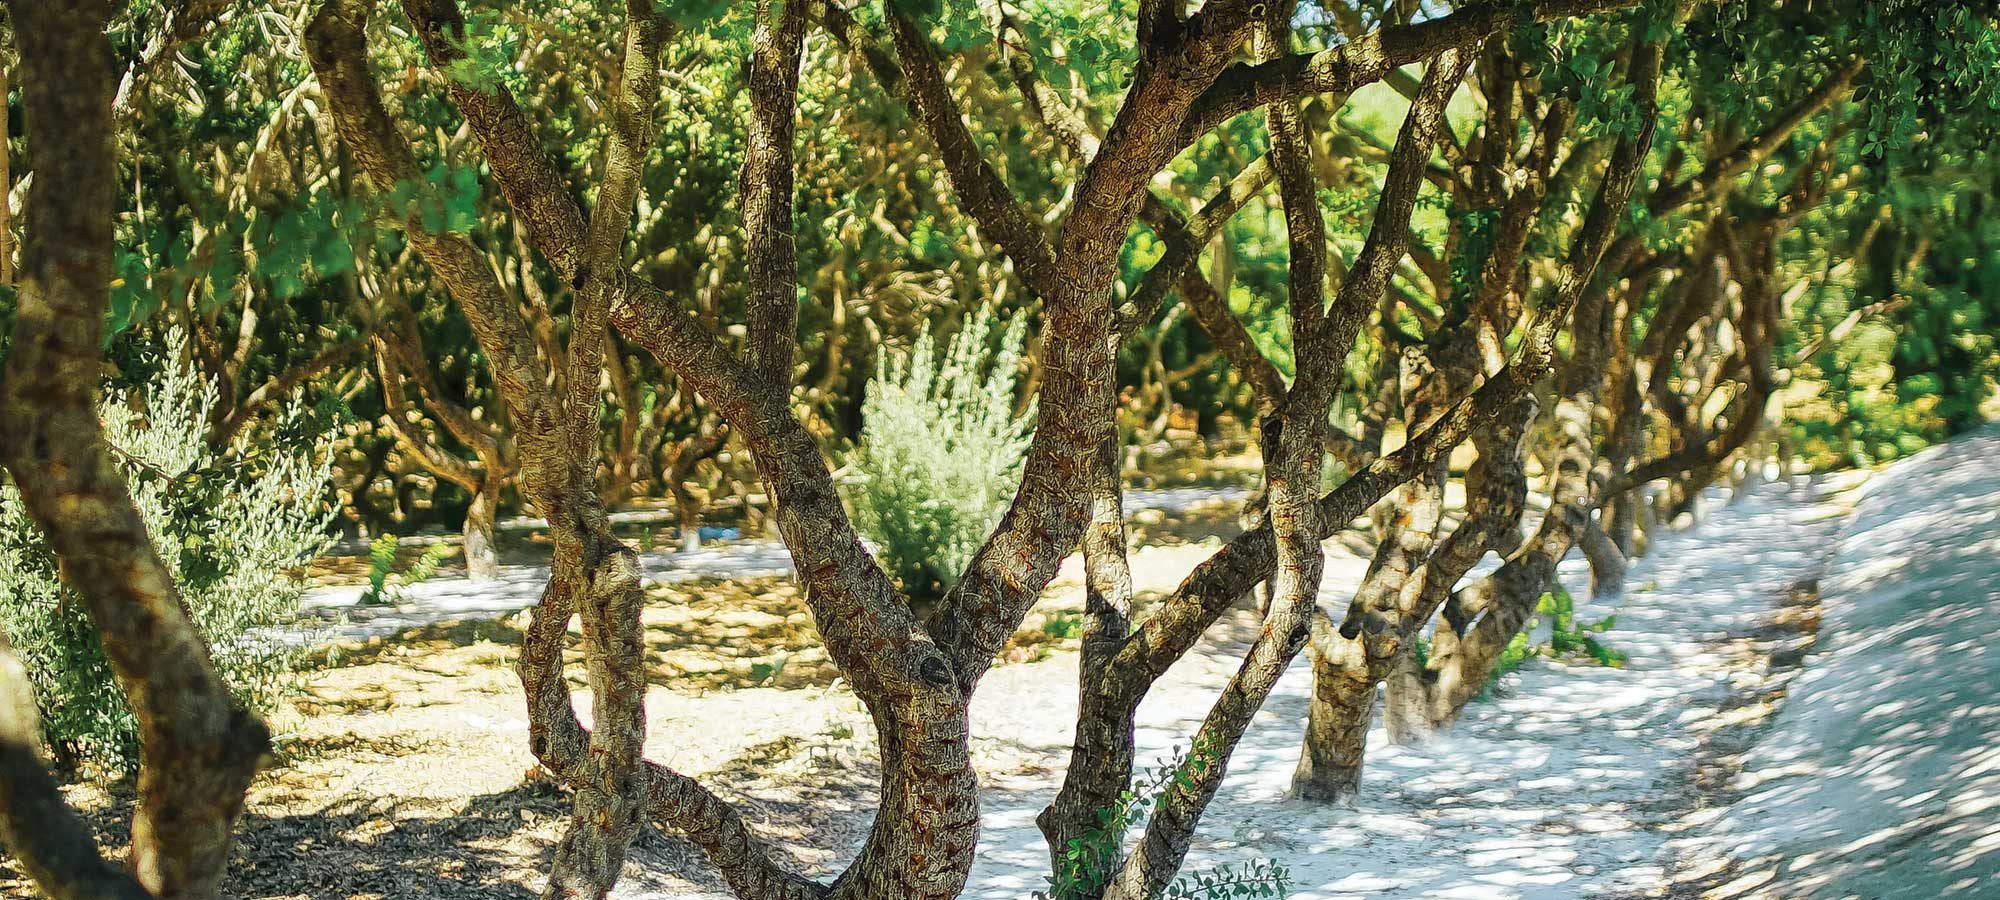 On the Greek Island of Chios, One Tree Rules Them All